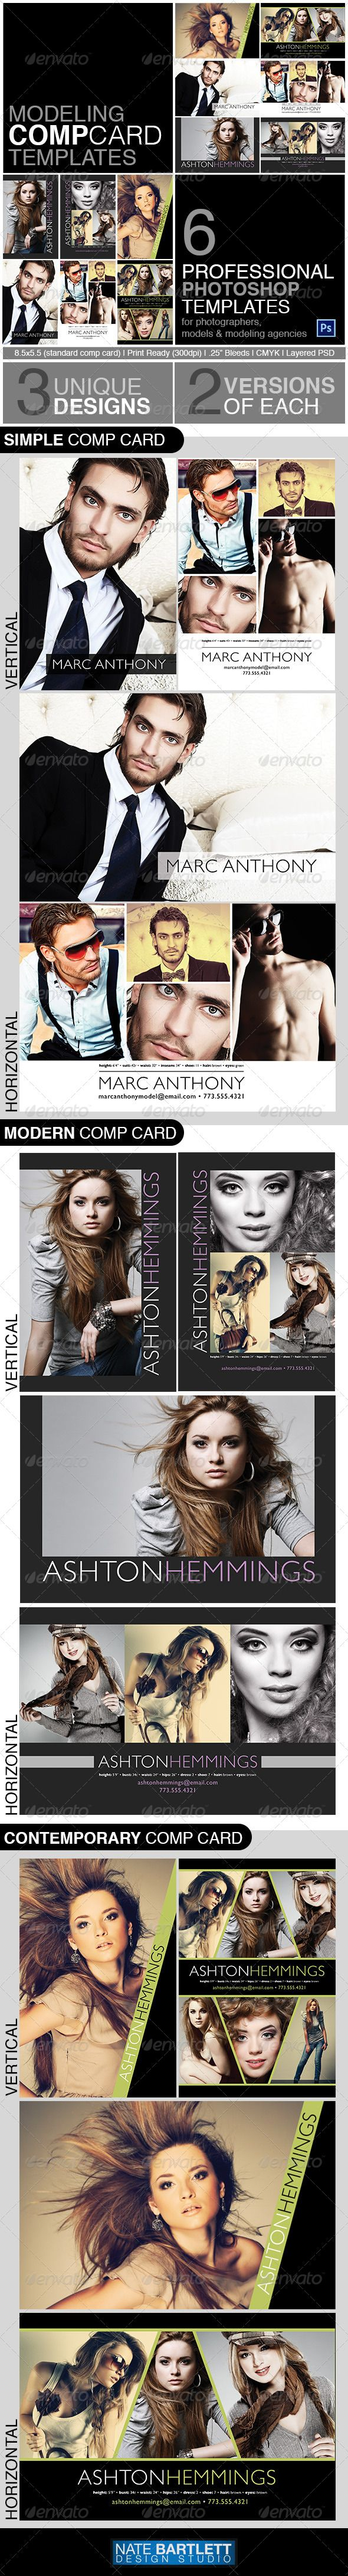 Models, actors, actresses all need comp cards to leave behind at auditions, model calls, and casting calls. This comp card template bundle is perfect for modeling agencies, photographers, models, actors and designers. There are 6 templates in total with 3 unique designs, each with various layout orientations. This bundle is perfect to use now and save for later. Your clients will certainly be impressed with these professional designs.